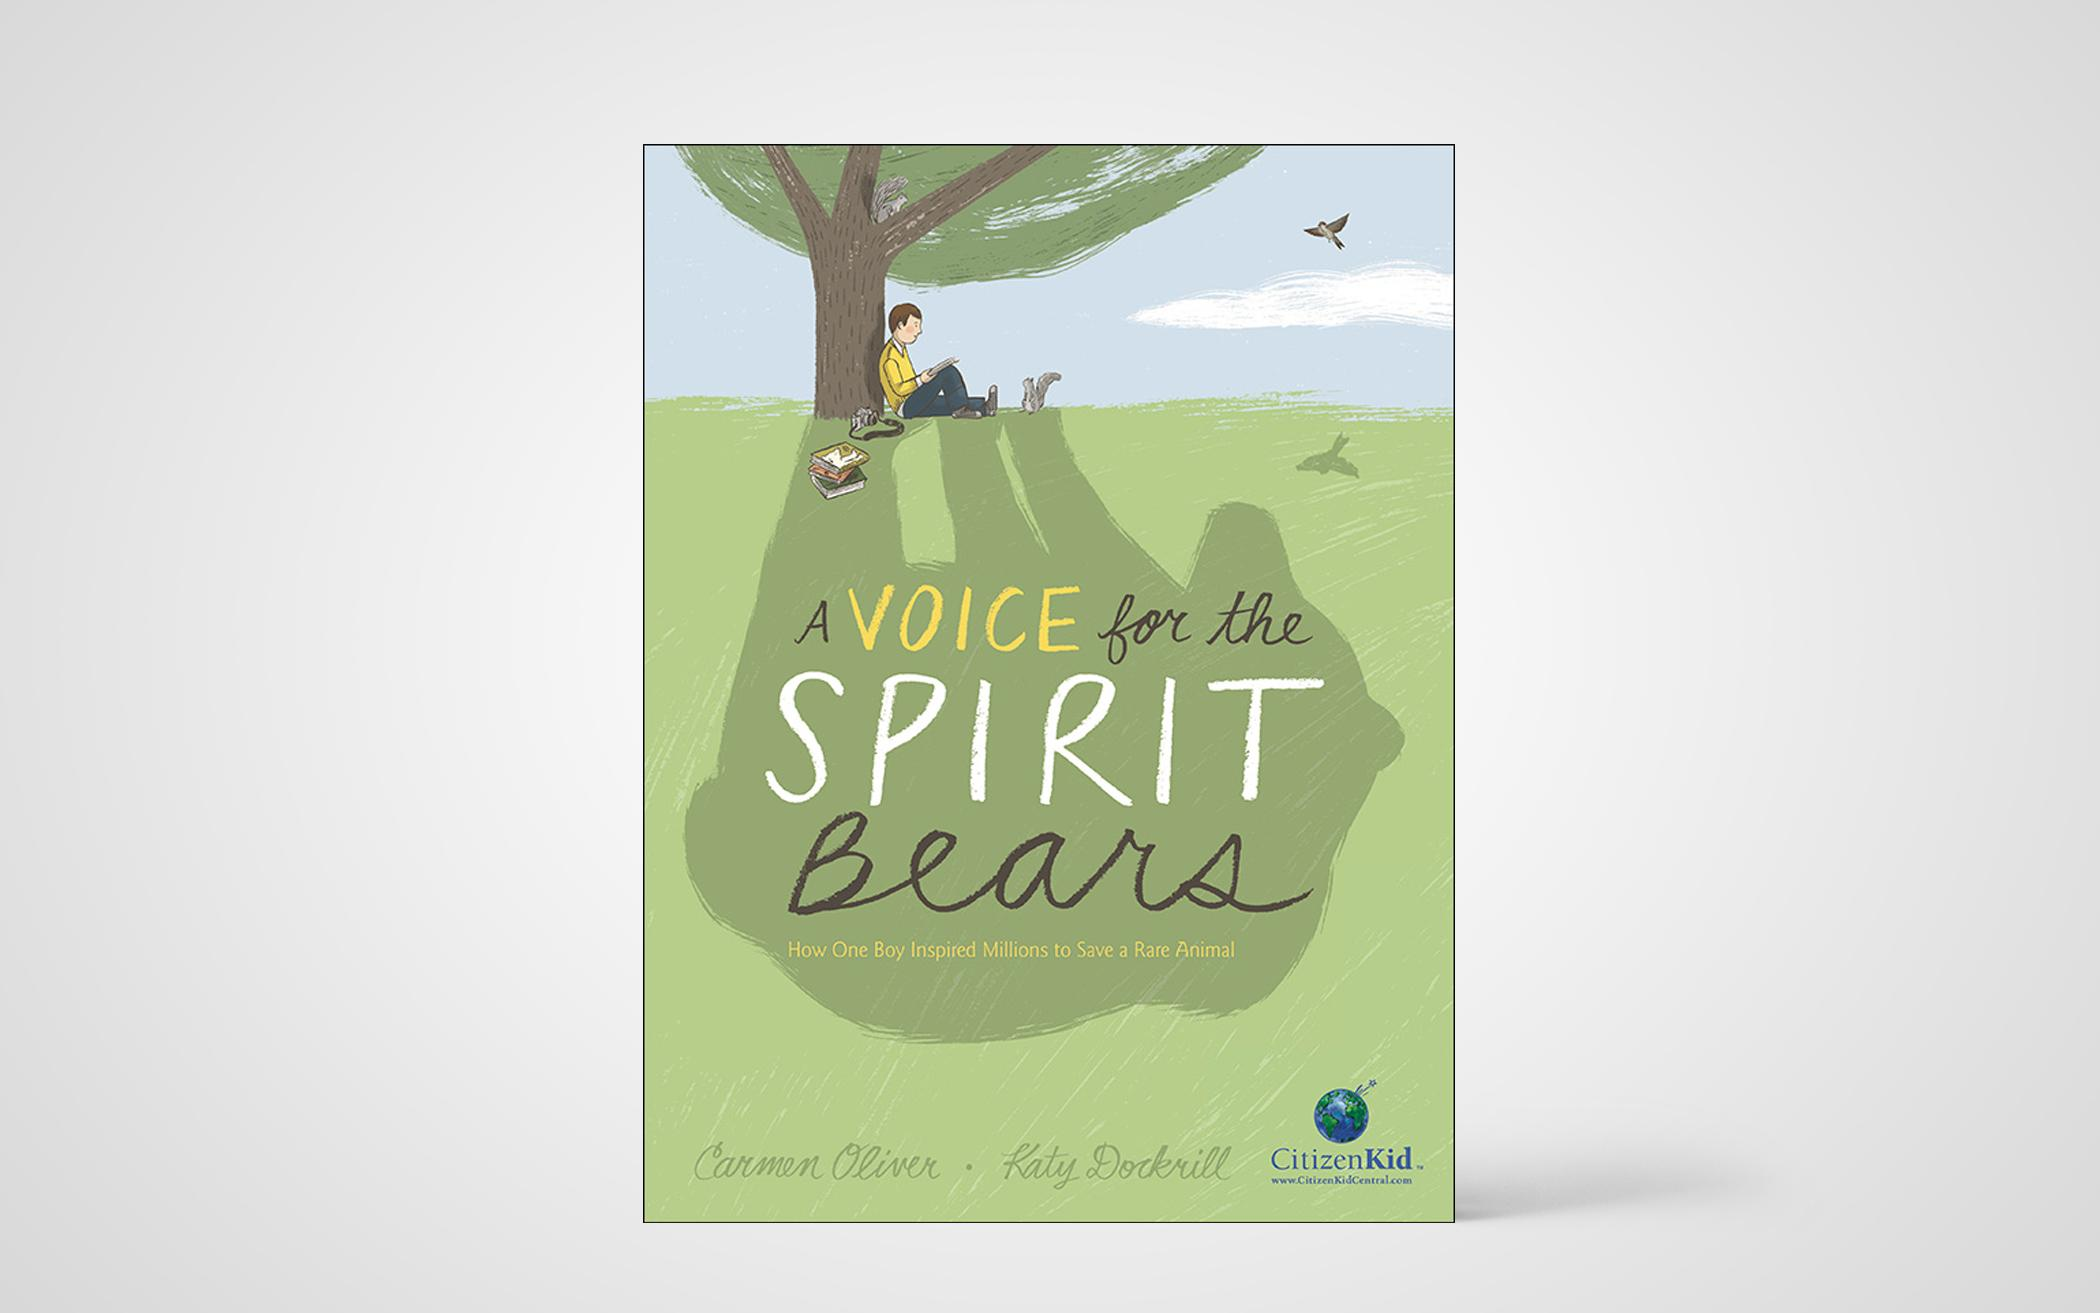 A Voice for Spirit Bears: How One Day Inspired Millions to Save a Rare Animal